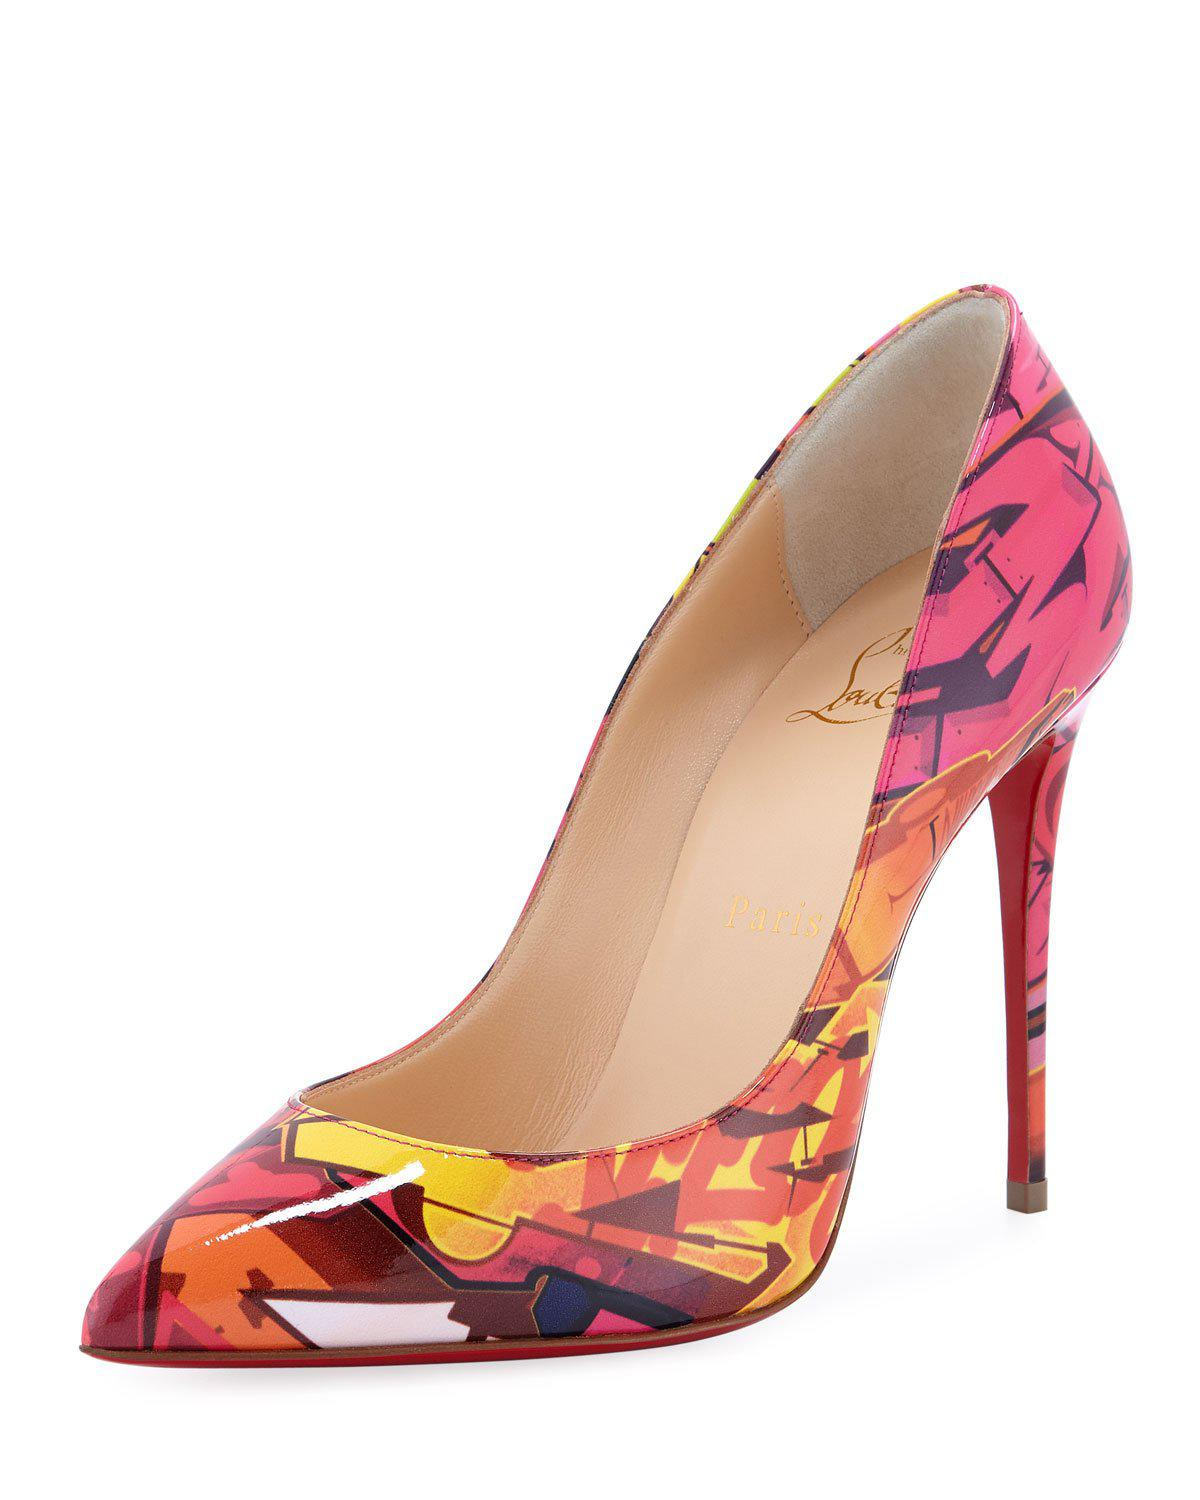 e44bb254ca2a Christian Louboutin Pigalle Follies 100Mm Patent Metrograf Red Sole Pumps  In Pink